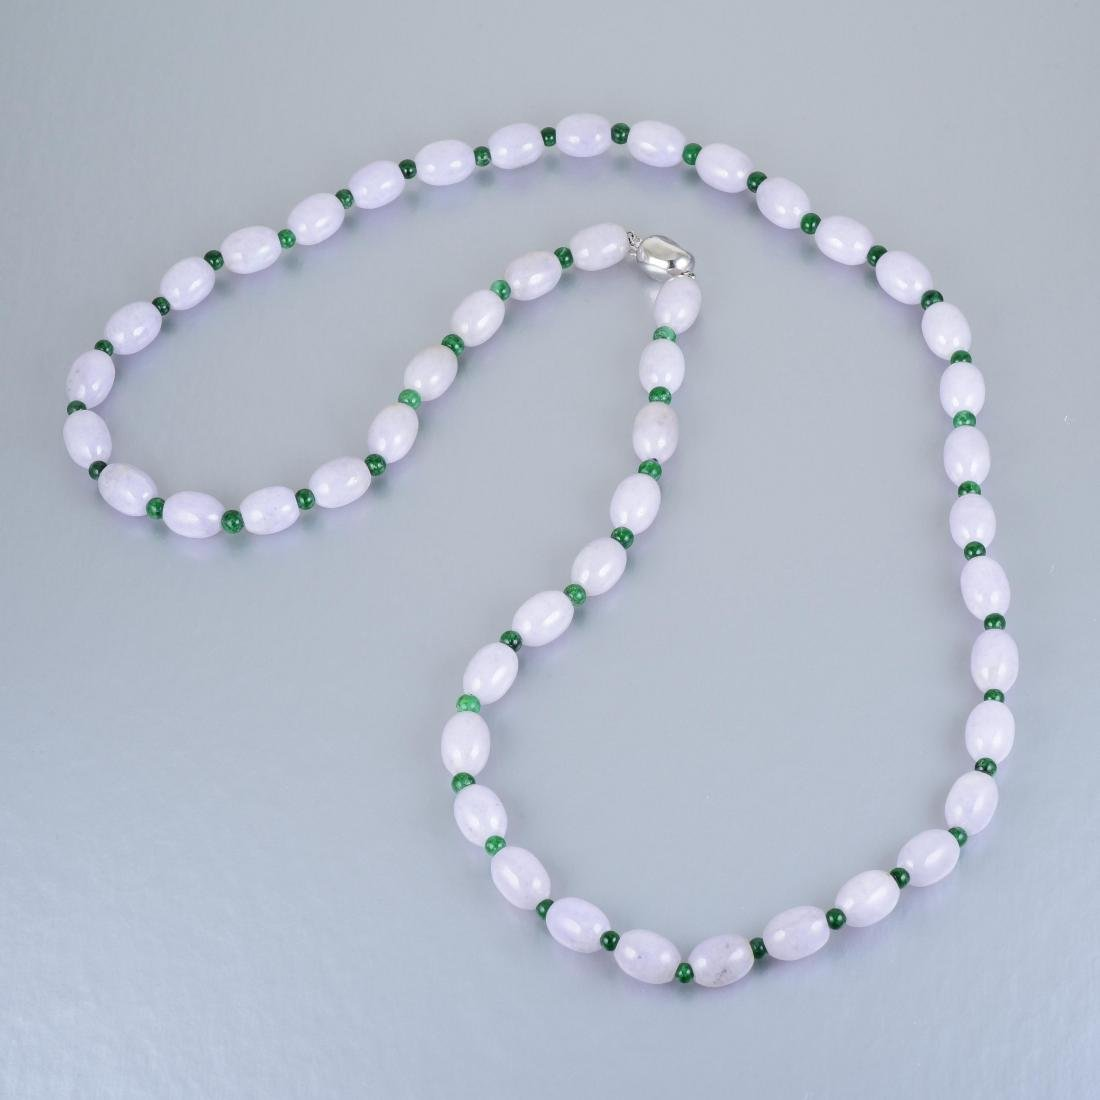 A Lavender and Green Jade Necklace - 2